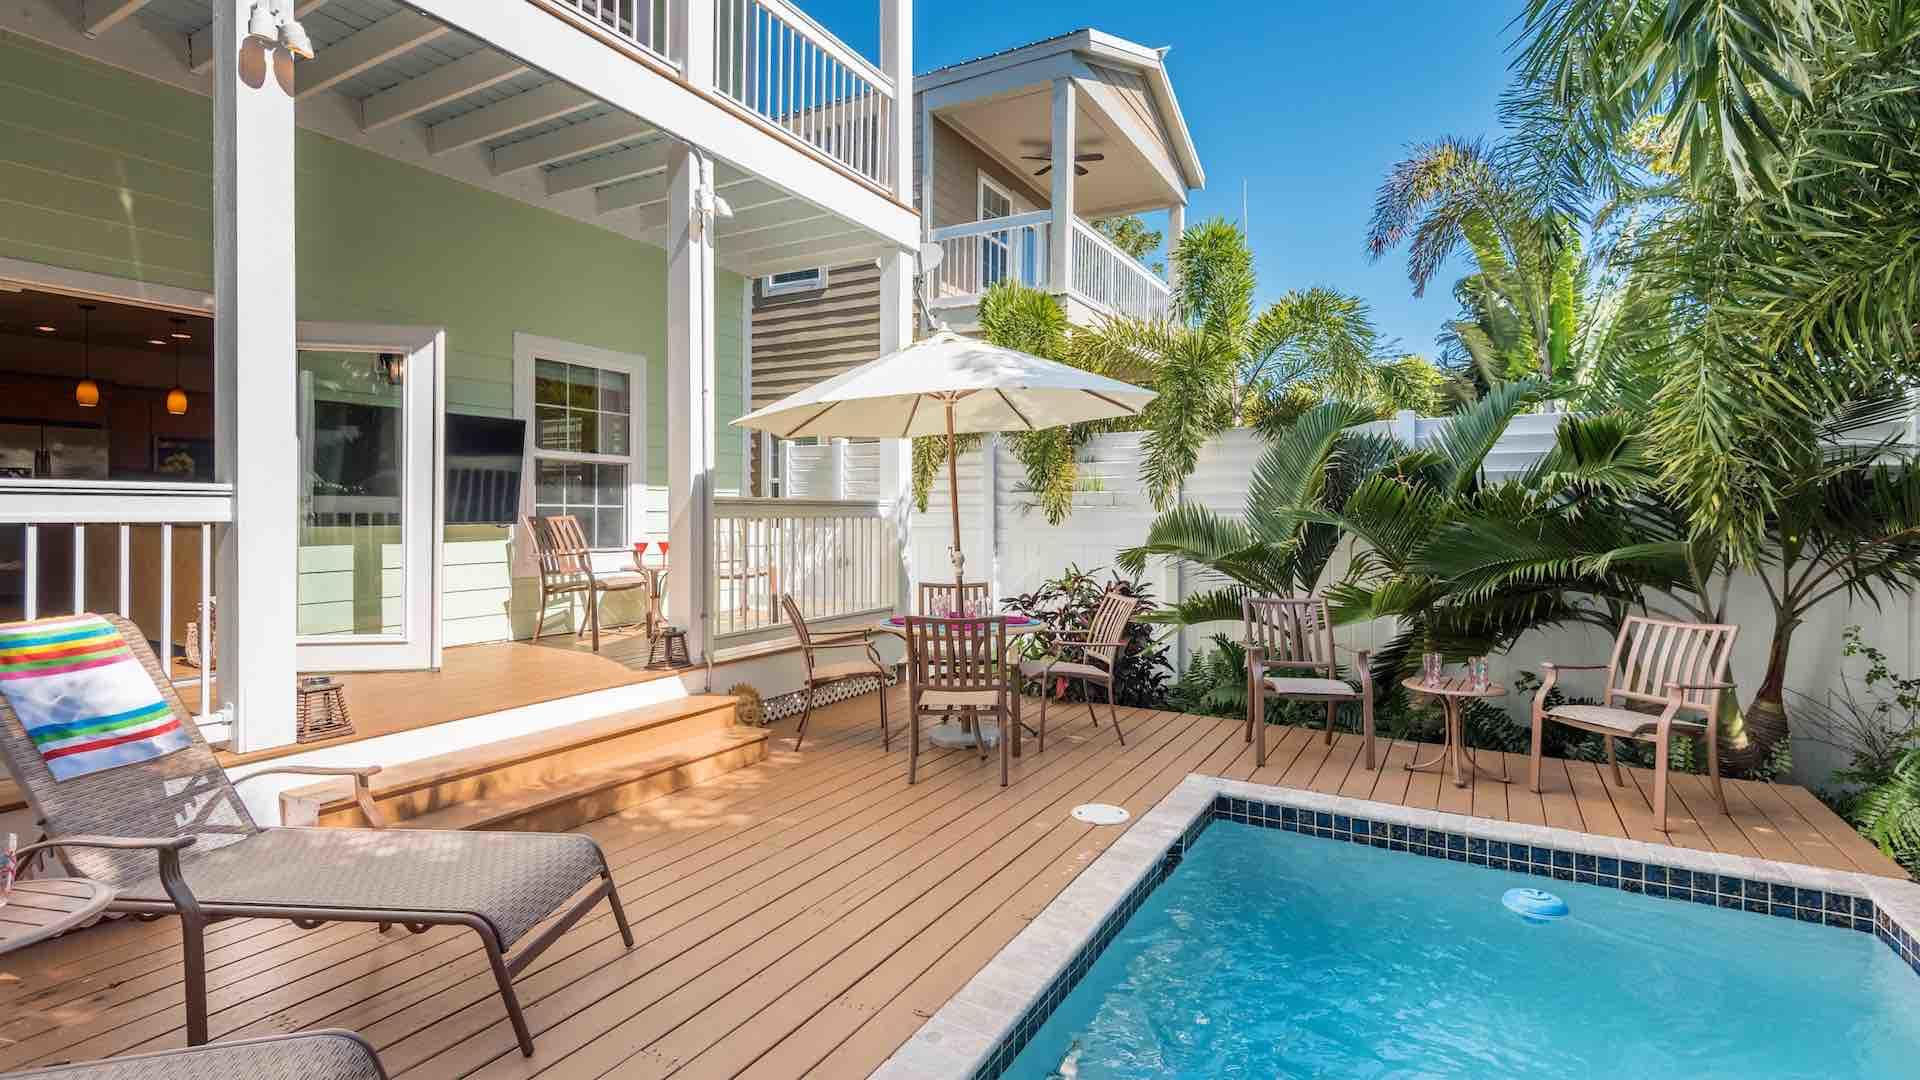 Old Town Key West pet friendly vacation home with pool and 3 bedrooms that rents monthly